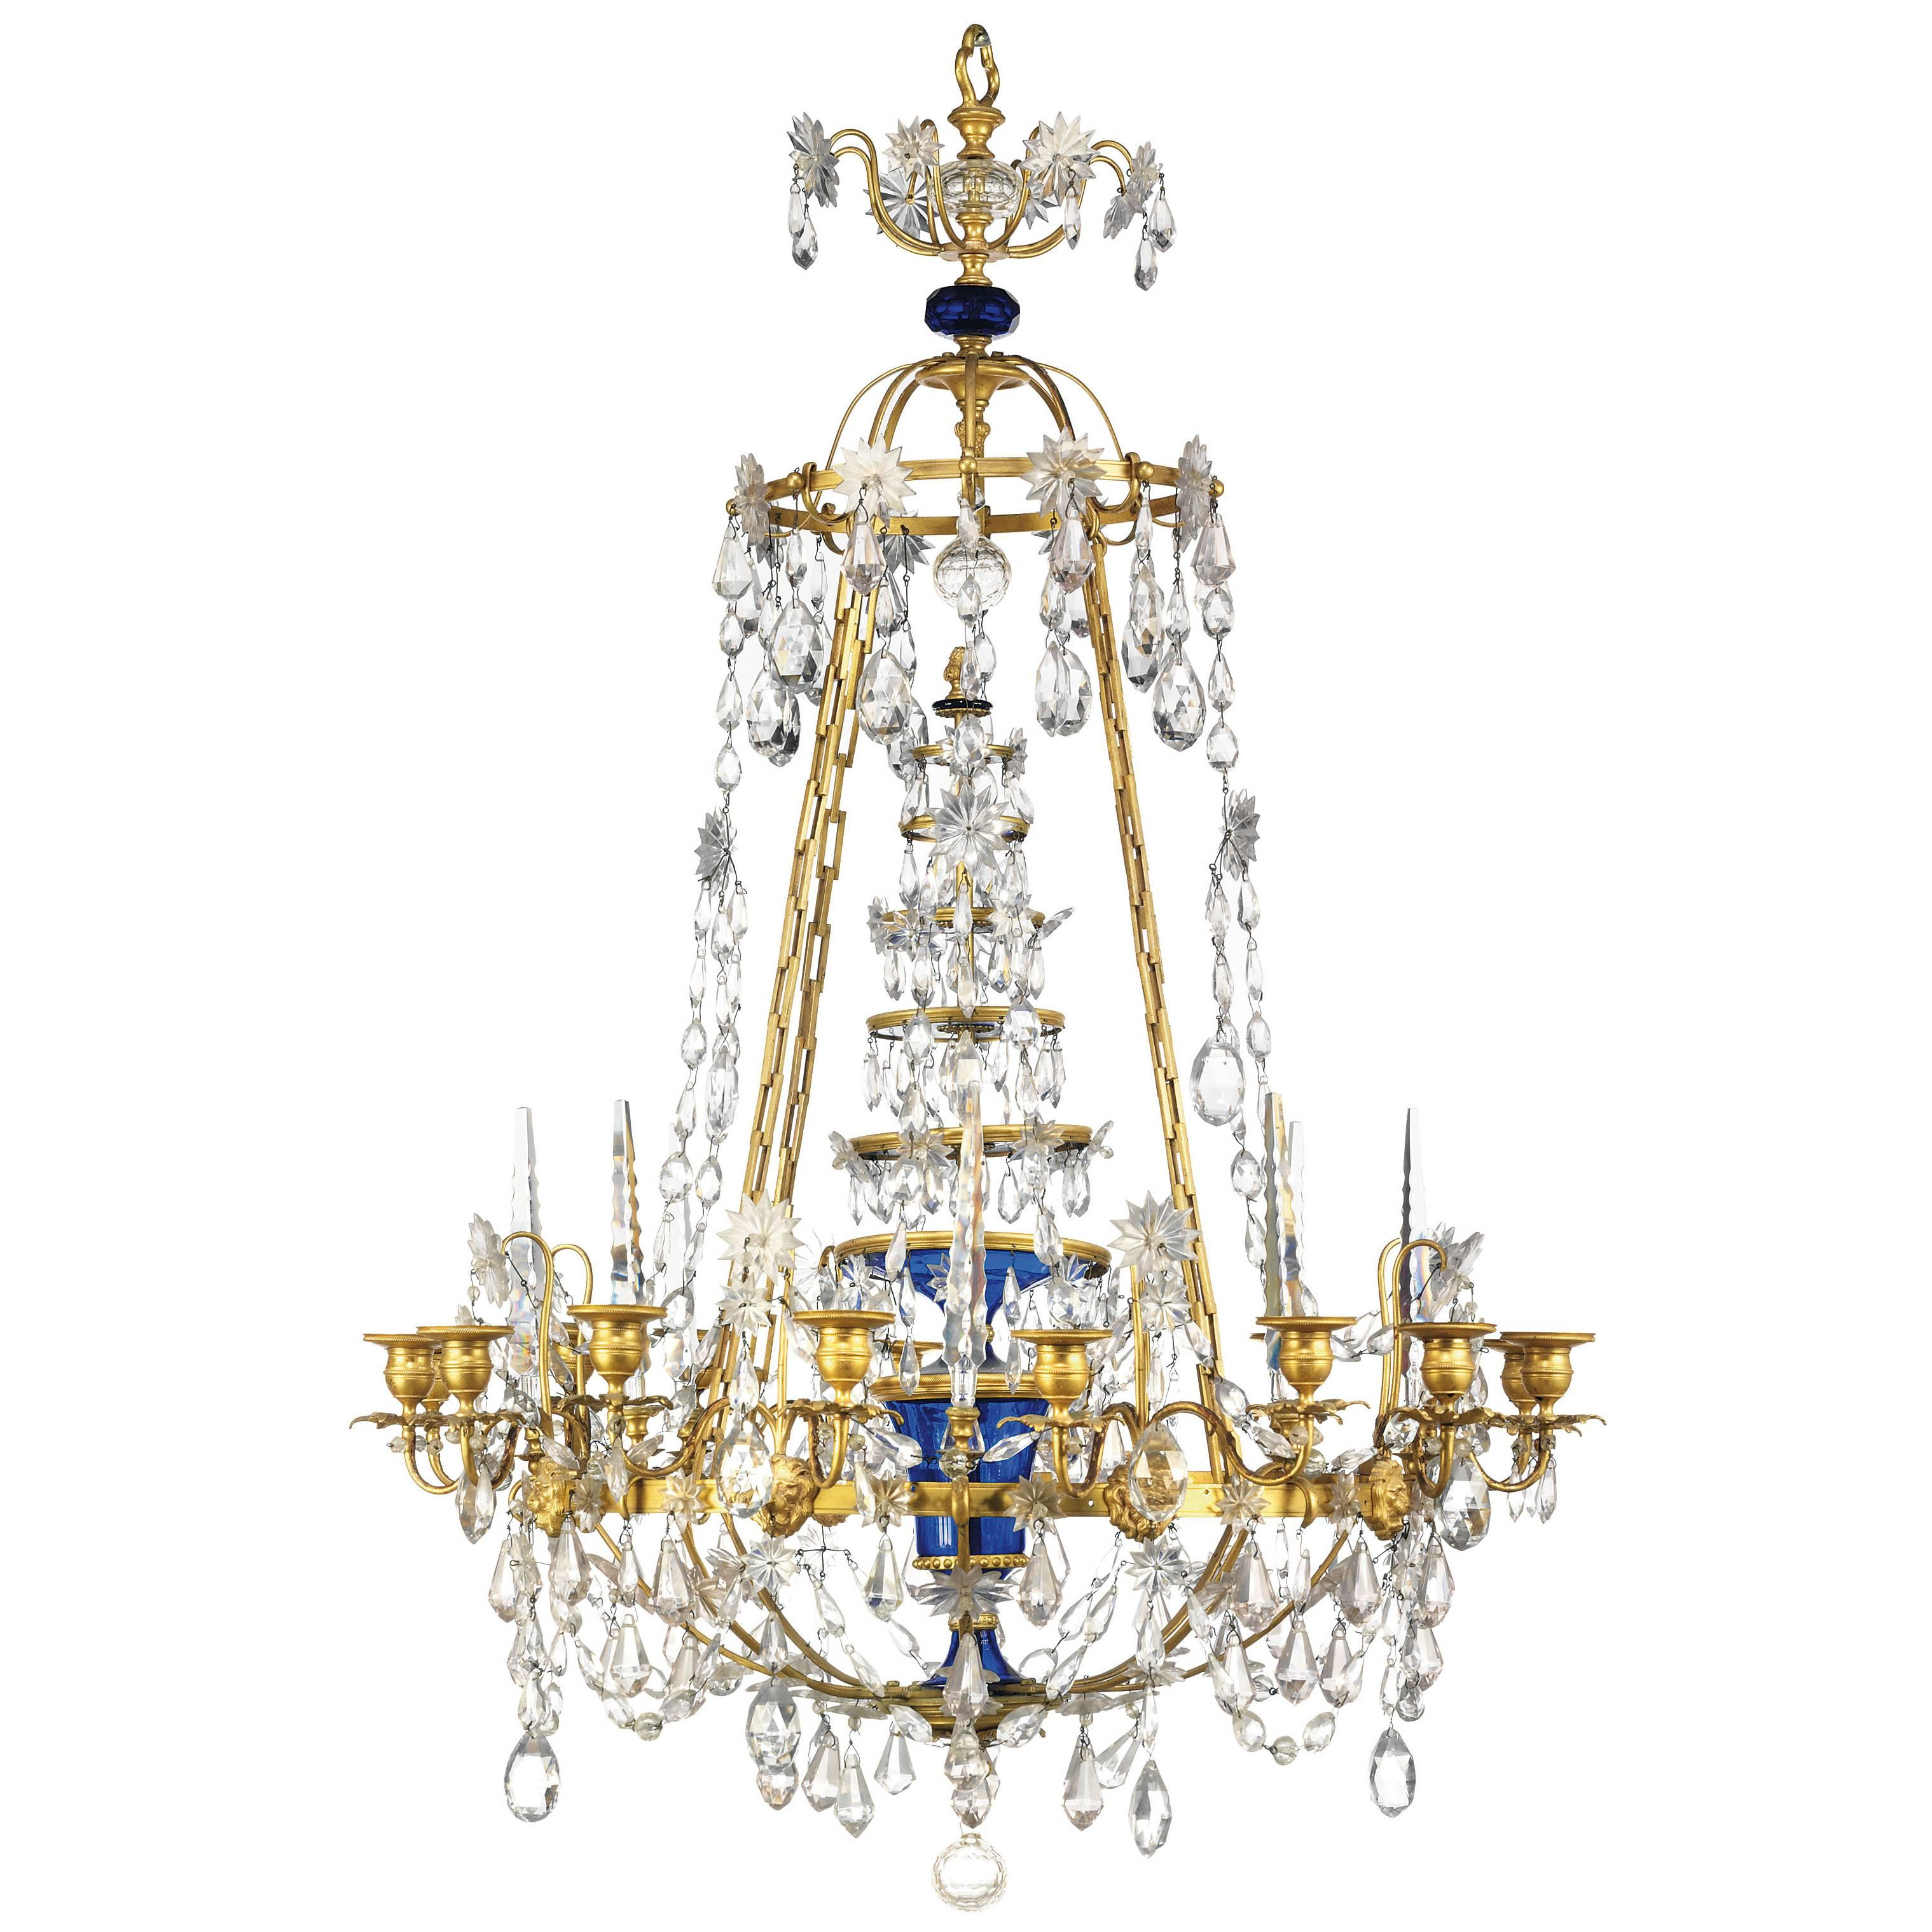 size design made category unique chandelier bohemian foamcore crystals not on chandeliers with etc style co would ony styles lighting brass crystal how french eimat dining funky and real favorite light foyer of pixball to diy rectangular full plain l option modern fixture